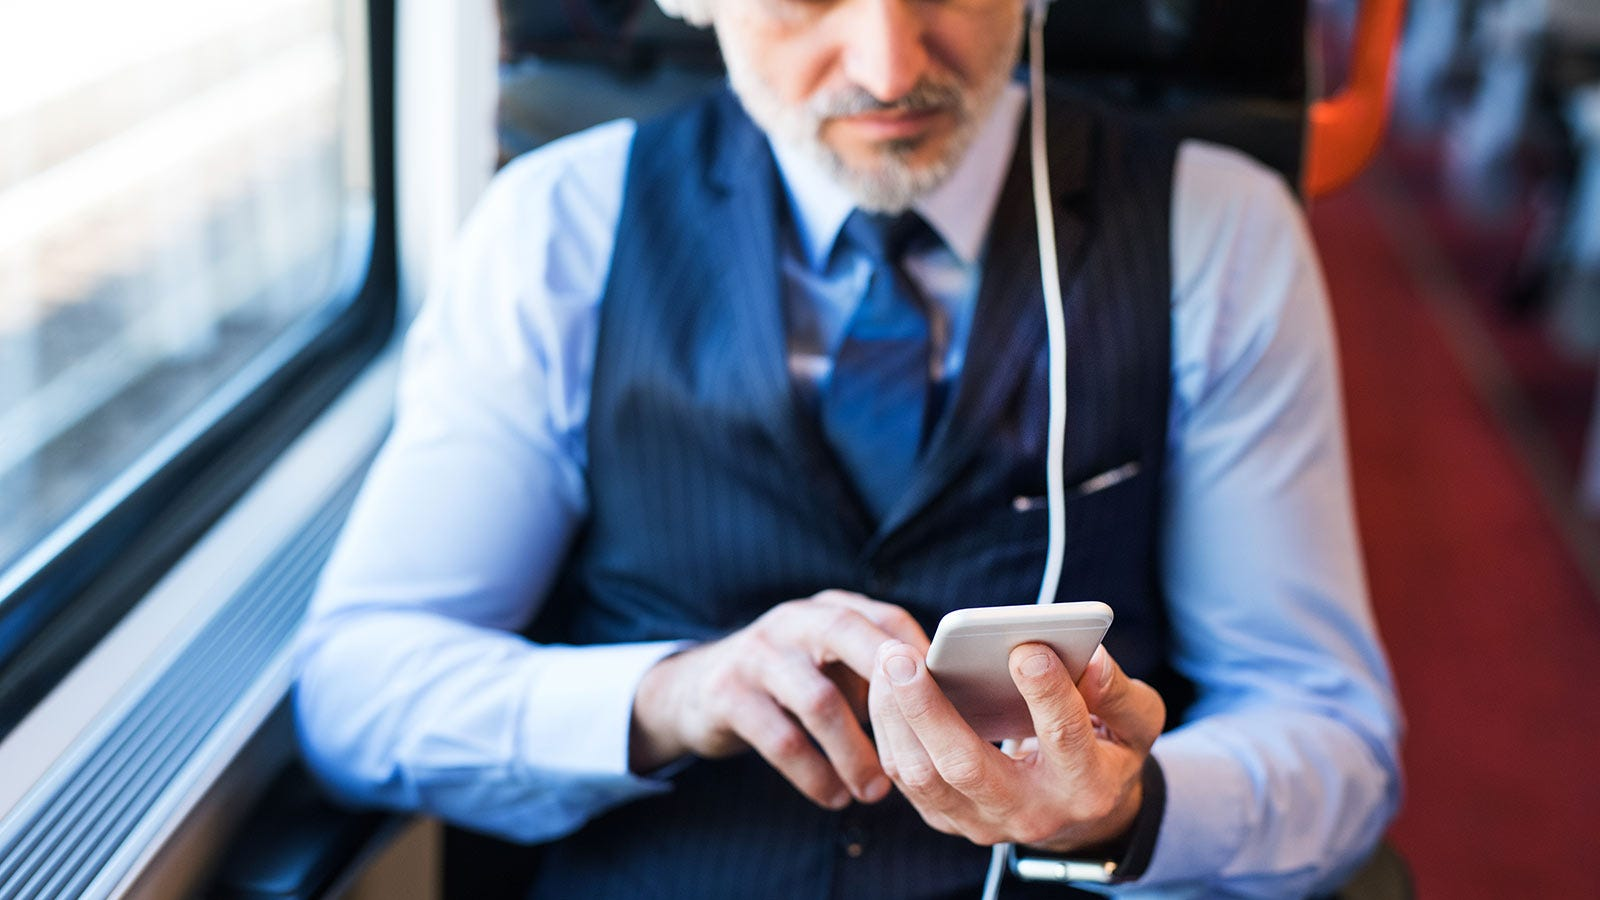 A man on a train listening to something on his phone in one earbud.